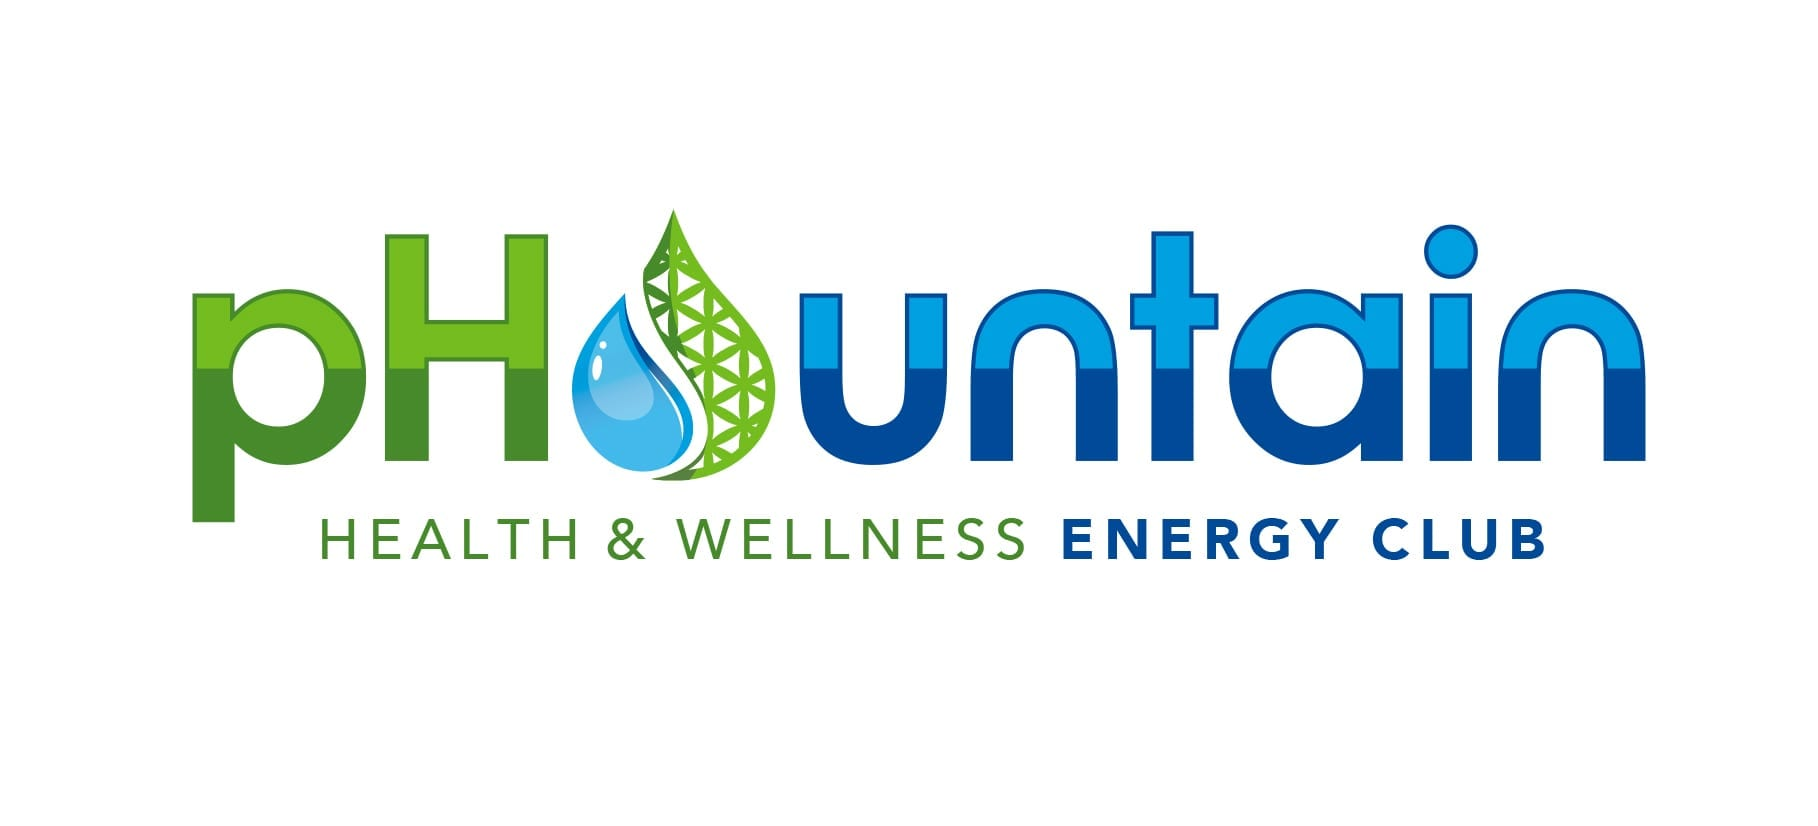 Sponsored by pHountain. pHountain is Long Island's premiere Health and Wellness Energy Club. pHountain's Rapid Rejuvenation program helps you feel better fast by helping remove built up toxins, giving you clean, healthy water and nourishing your body with the best greens and superfoods.<br><br><strong>https://www.phountain.com/</strong>